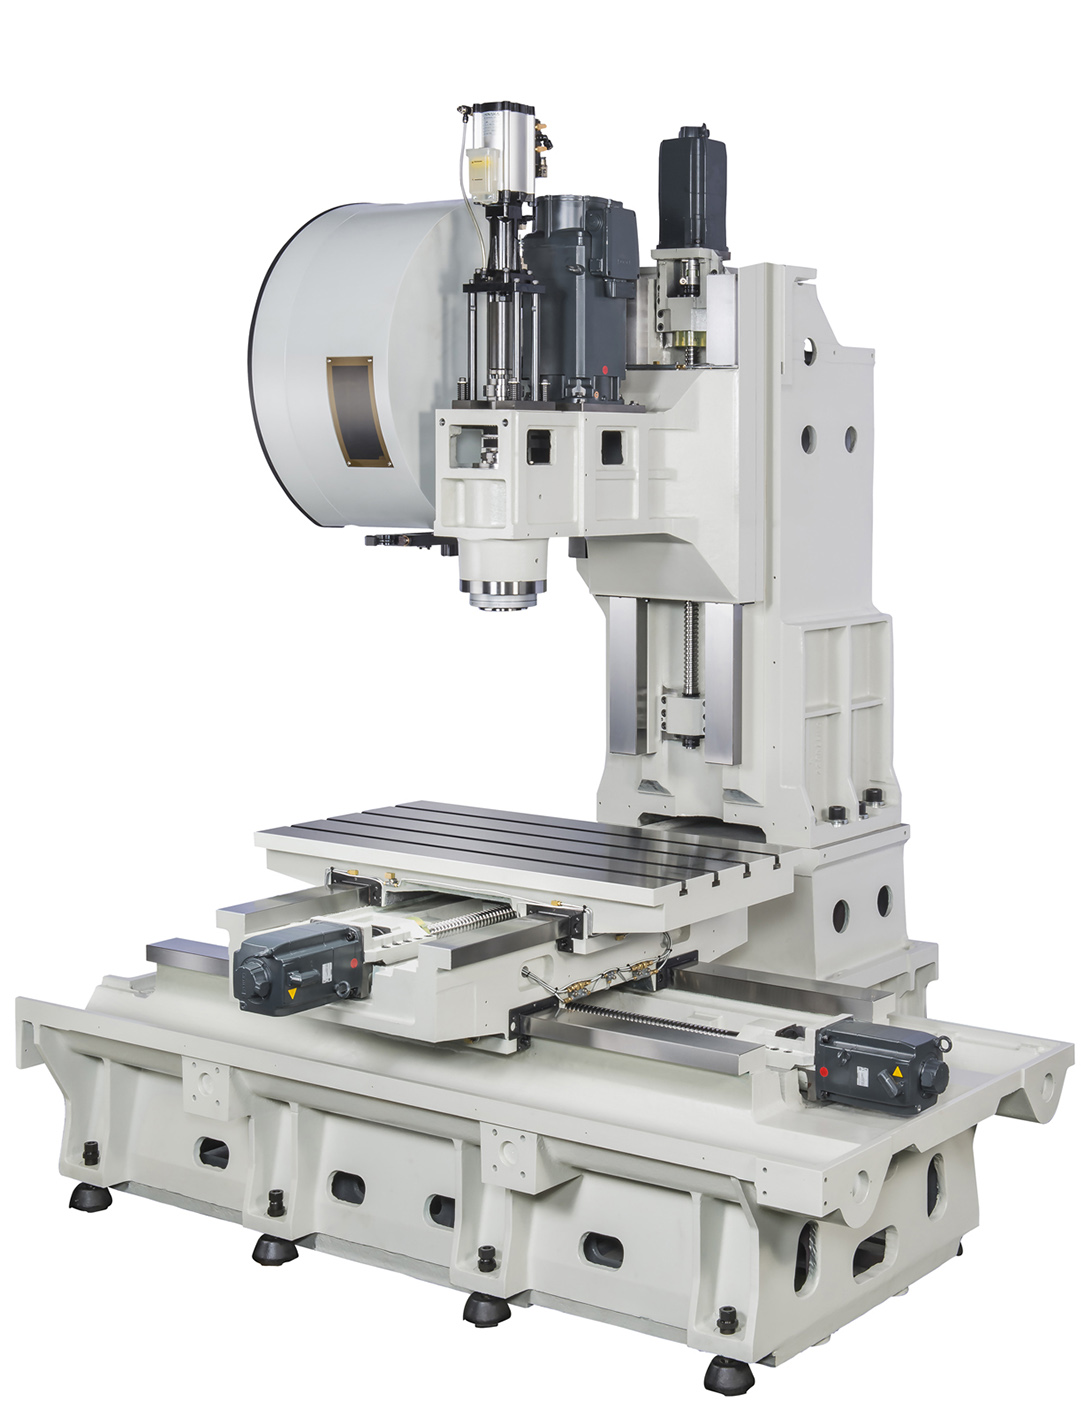 XYZ 1100 Frame | XYZ Machine Tools